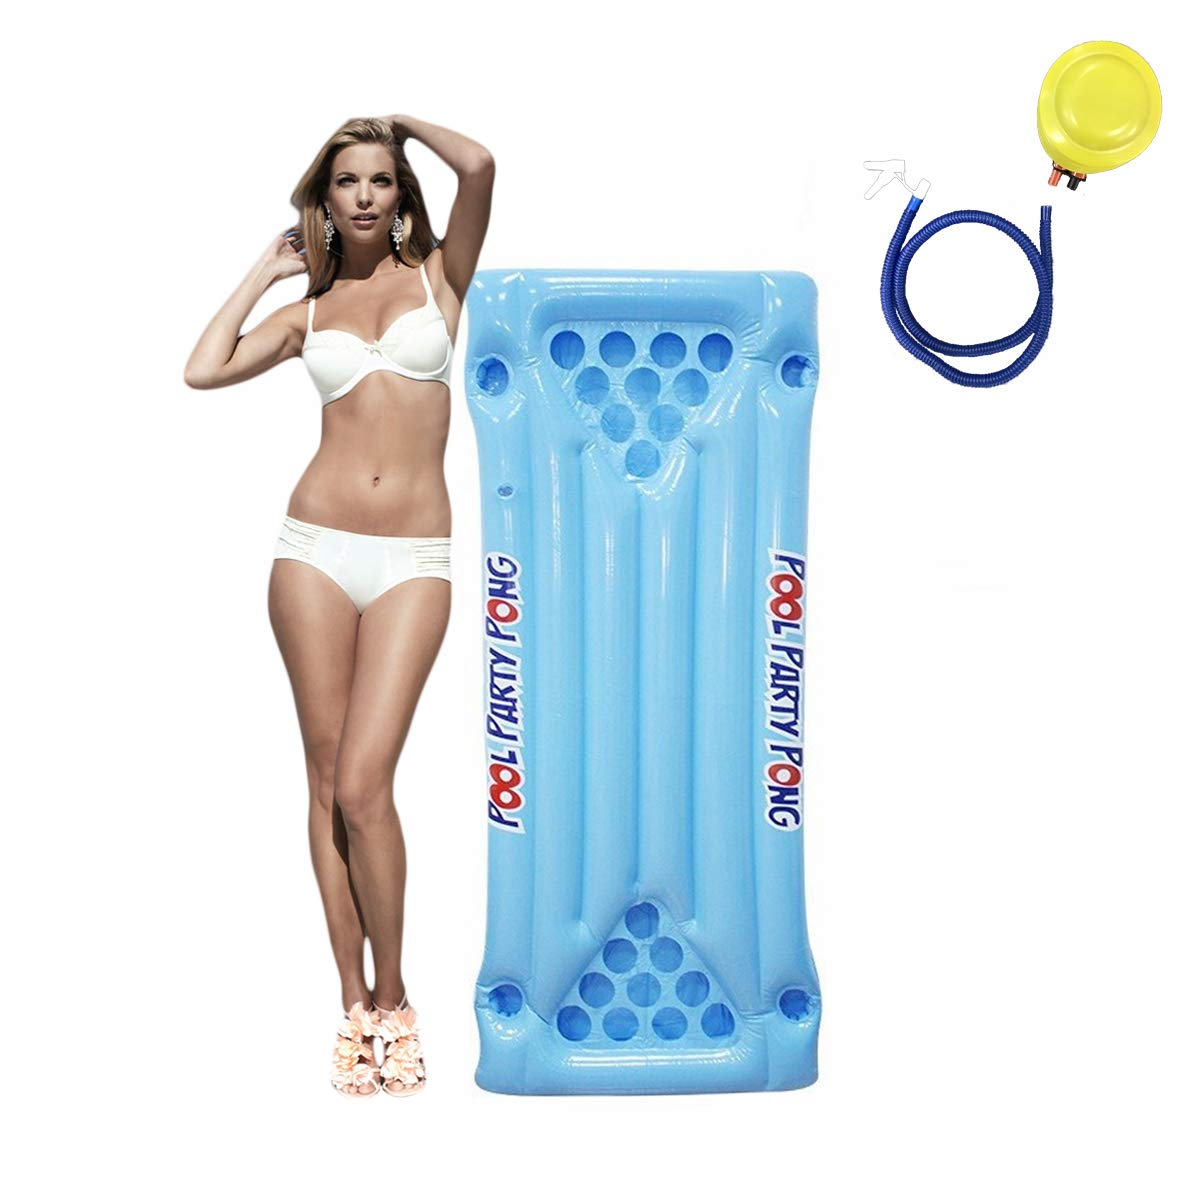 Flytool Beer Pong Table Float for Pool Party Game Supplies Inflatable Raft Lounger, Blue, One Size